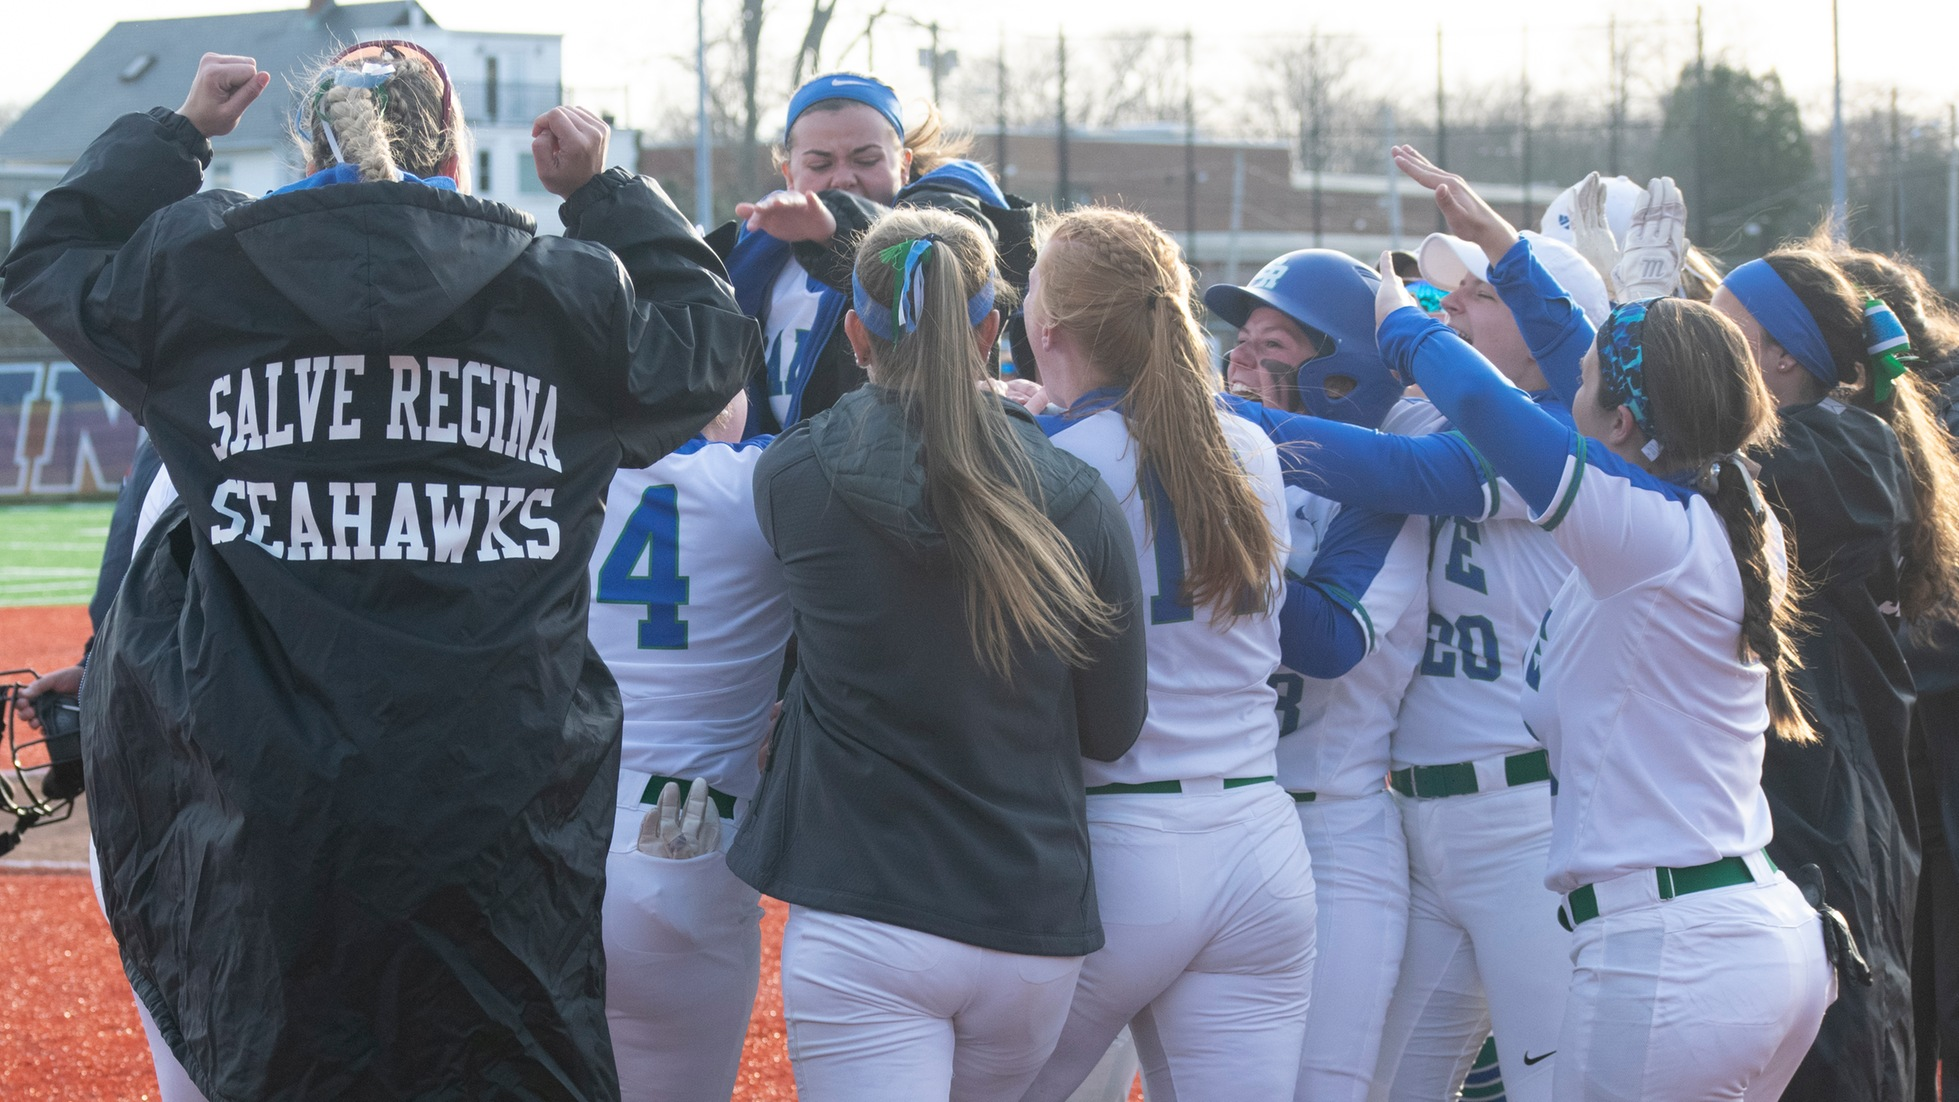 Nikki Vanelli, unseen in photo as she's mobbed by her jubilant teammates, touches home plate with her walk-off two-run home run in Salve Regina softball 4-3 victory in Game One with UMass Dartmouth. The Seahawks swept the Corsairs with a 6-5 win in the nightcap. (Photo by Jaime Wheeler)